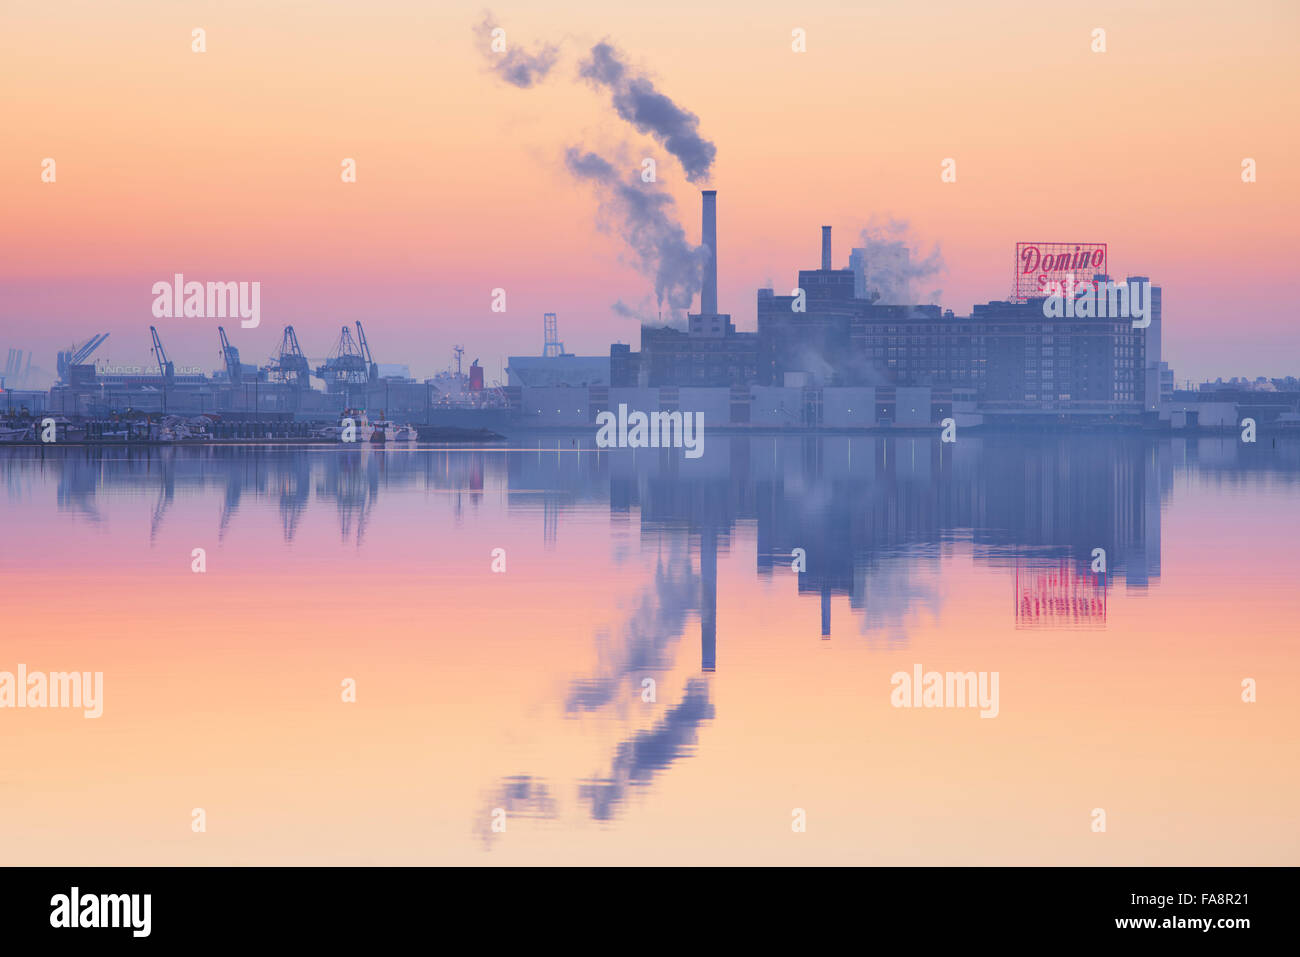 Early morning twilight over the Domino Sugars plant in Baltimore, Maryland - Stock Image